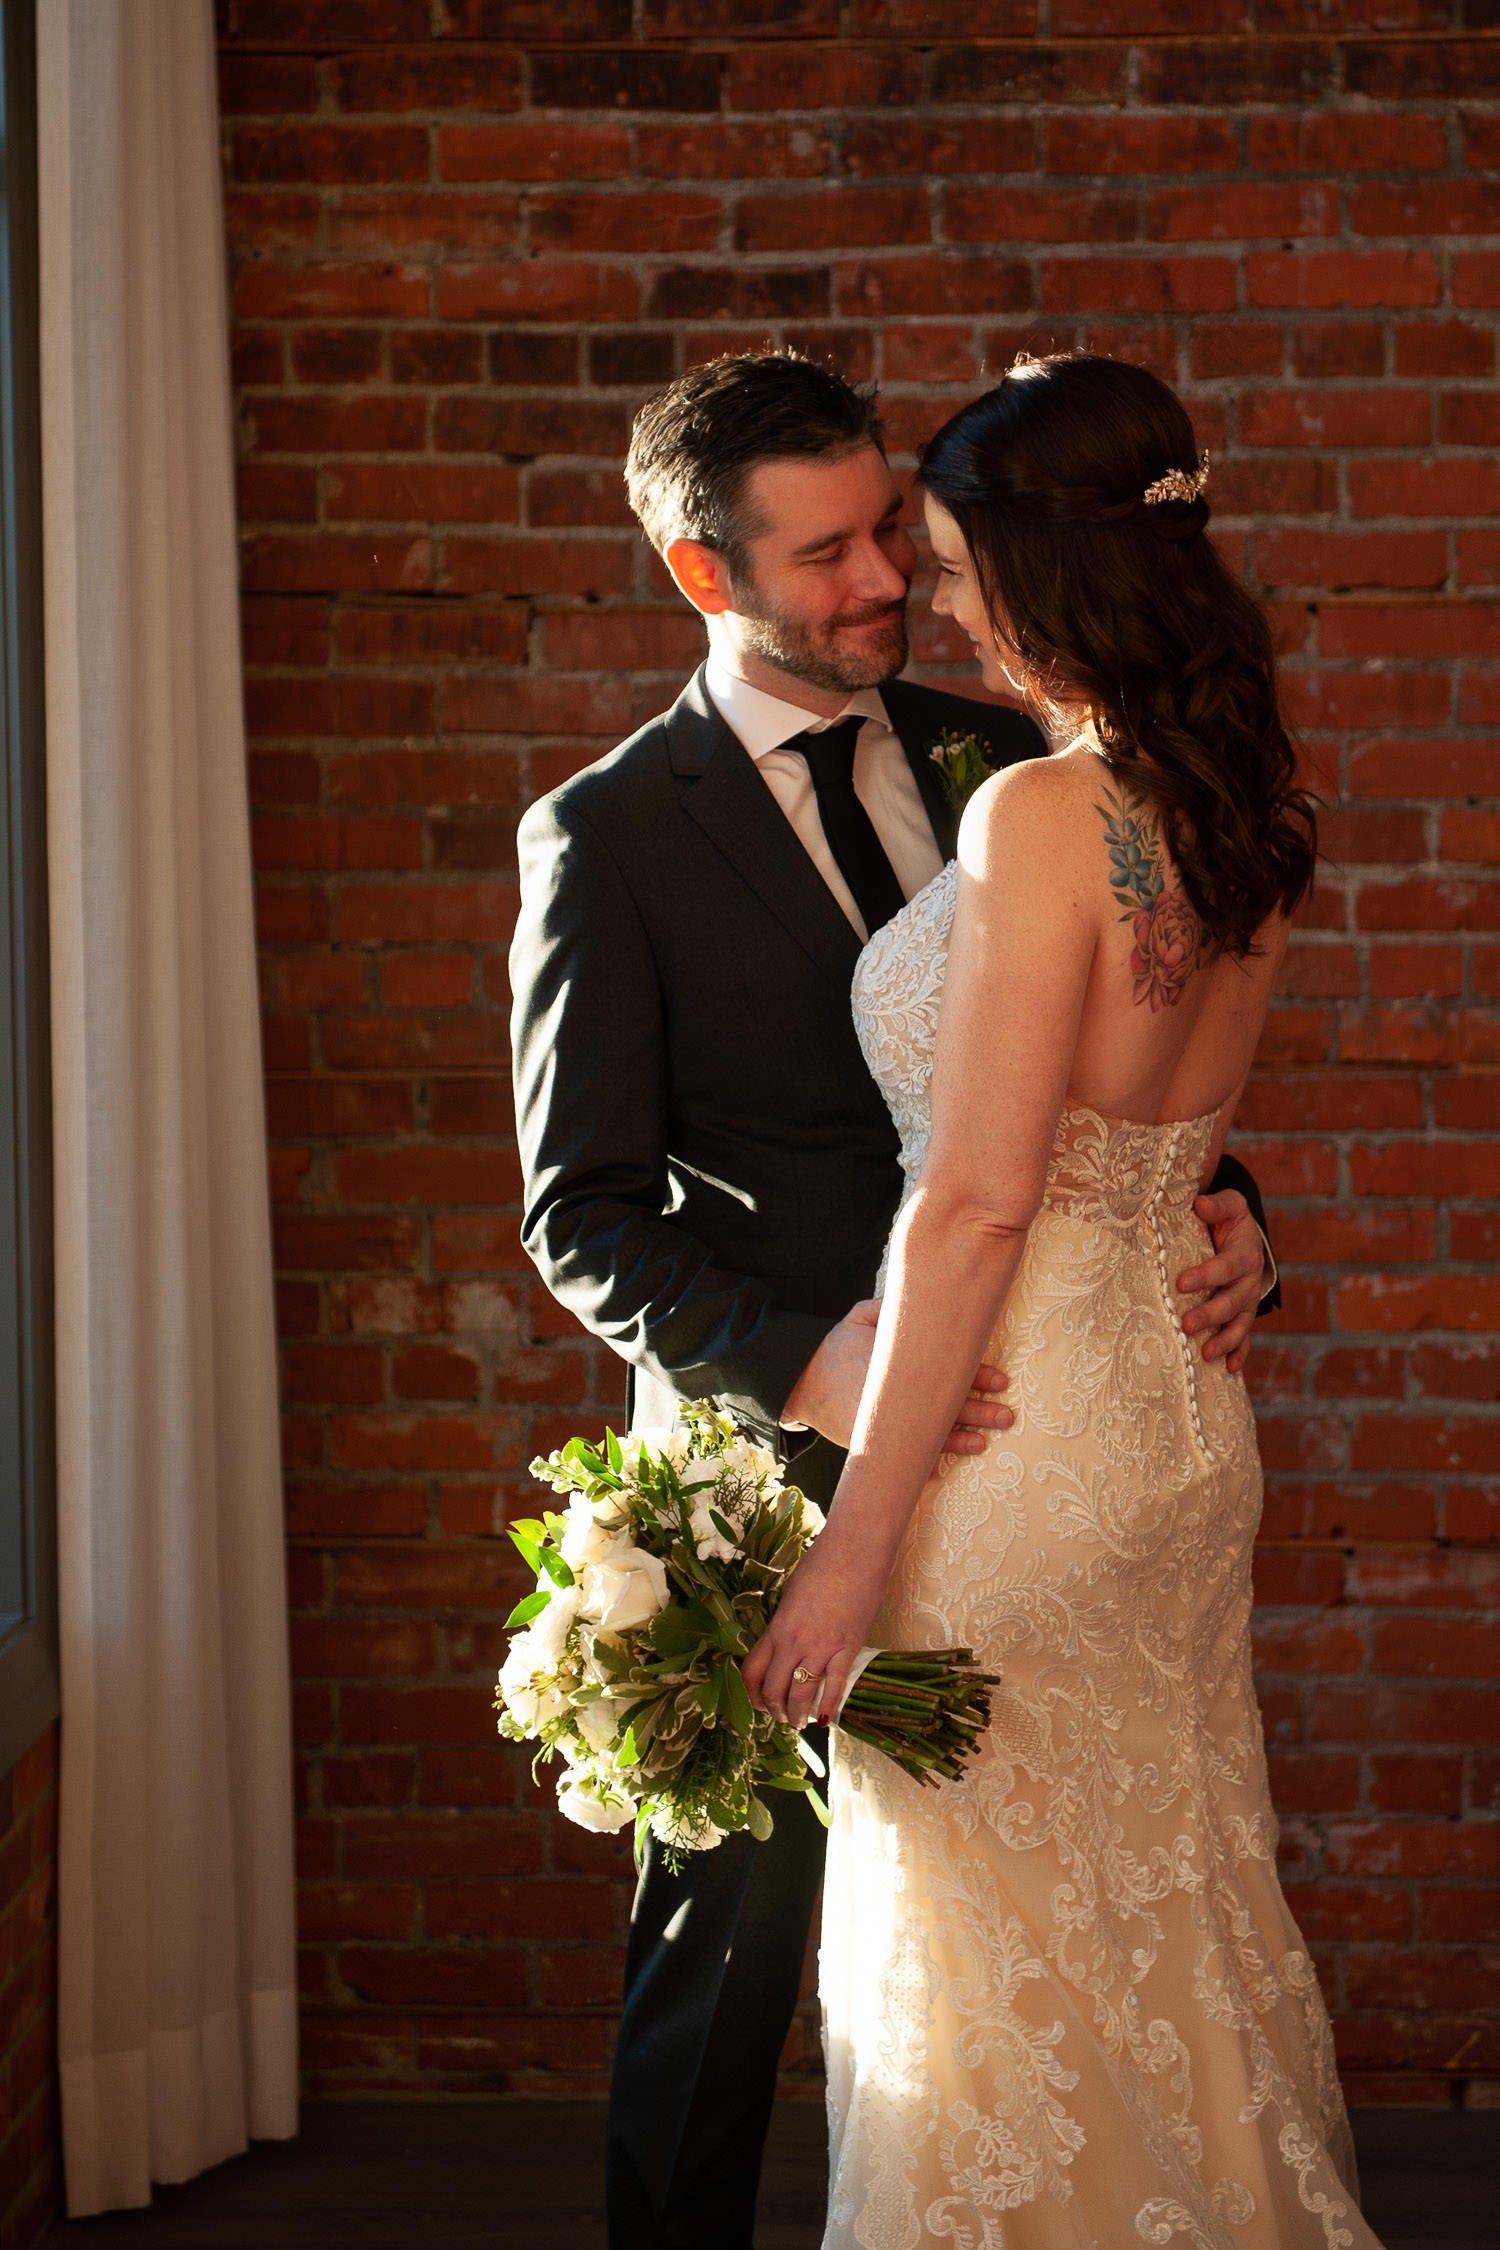 first look for the bride and groom at Venue 308 captured by Tara Whittaker Photography